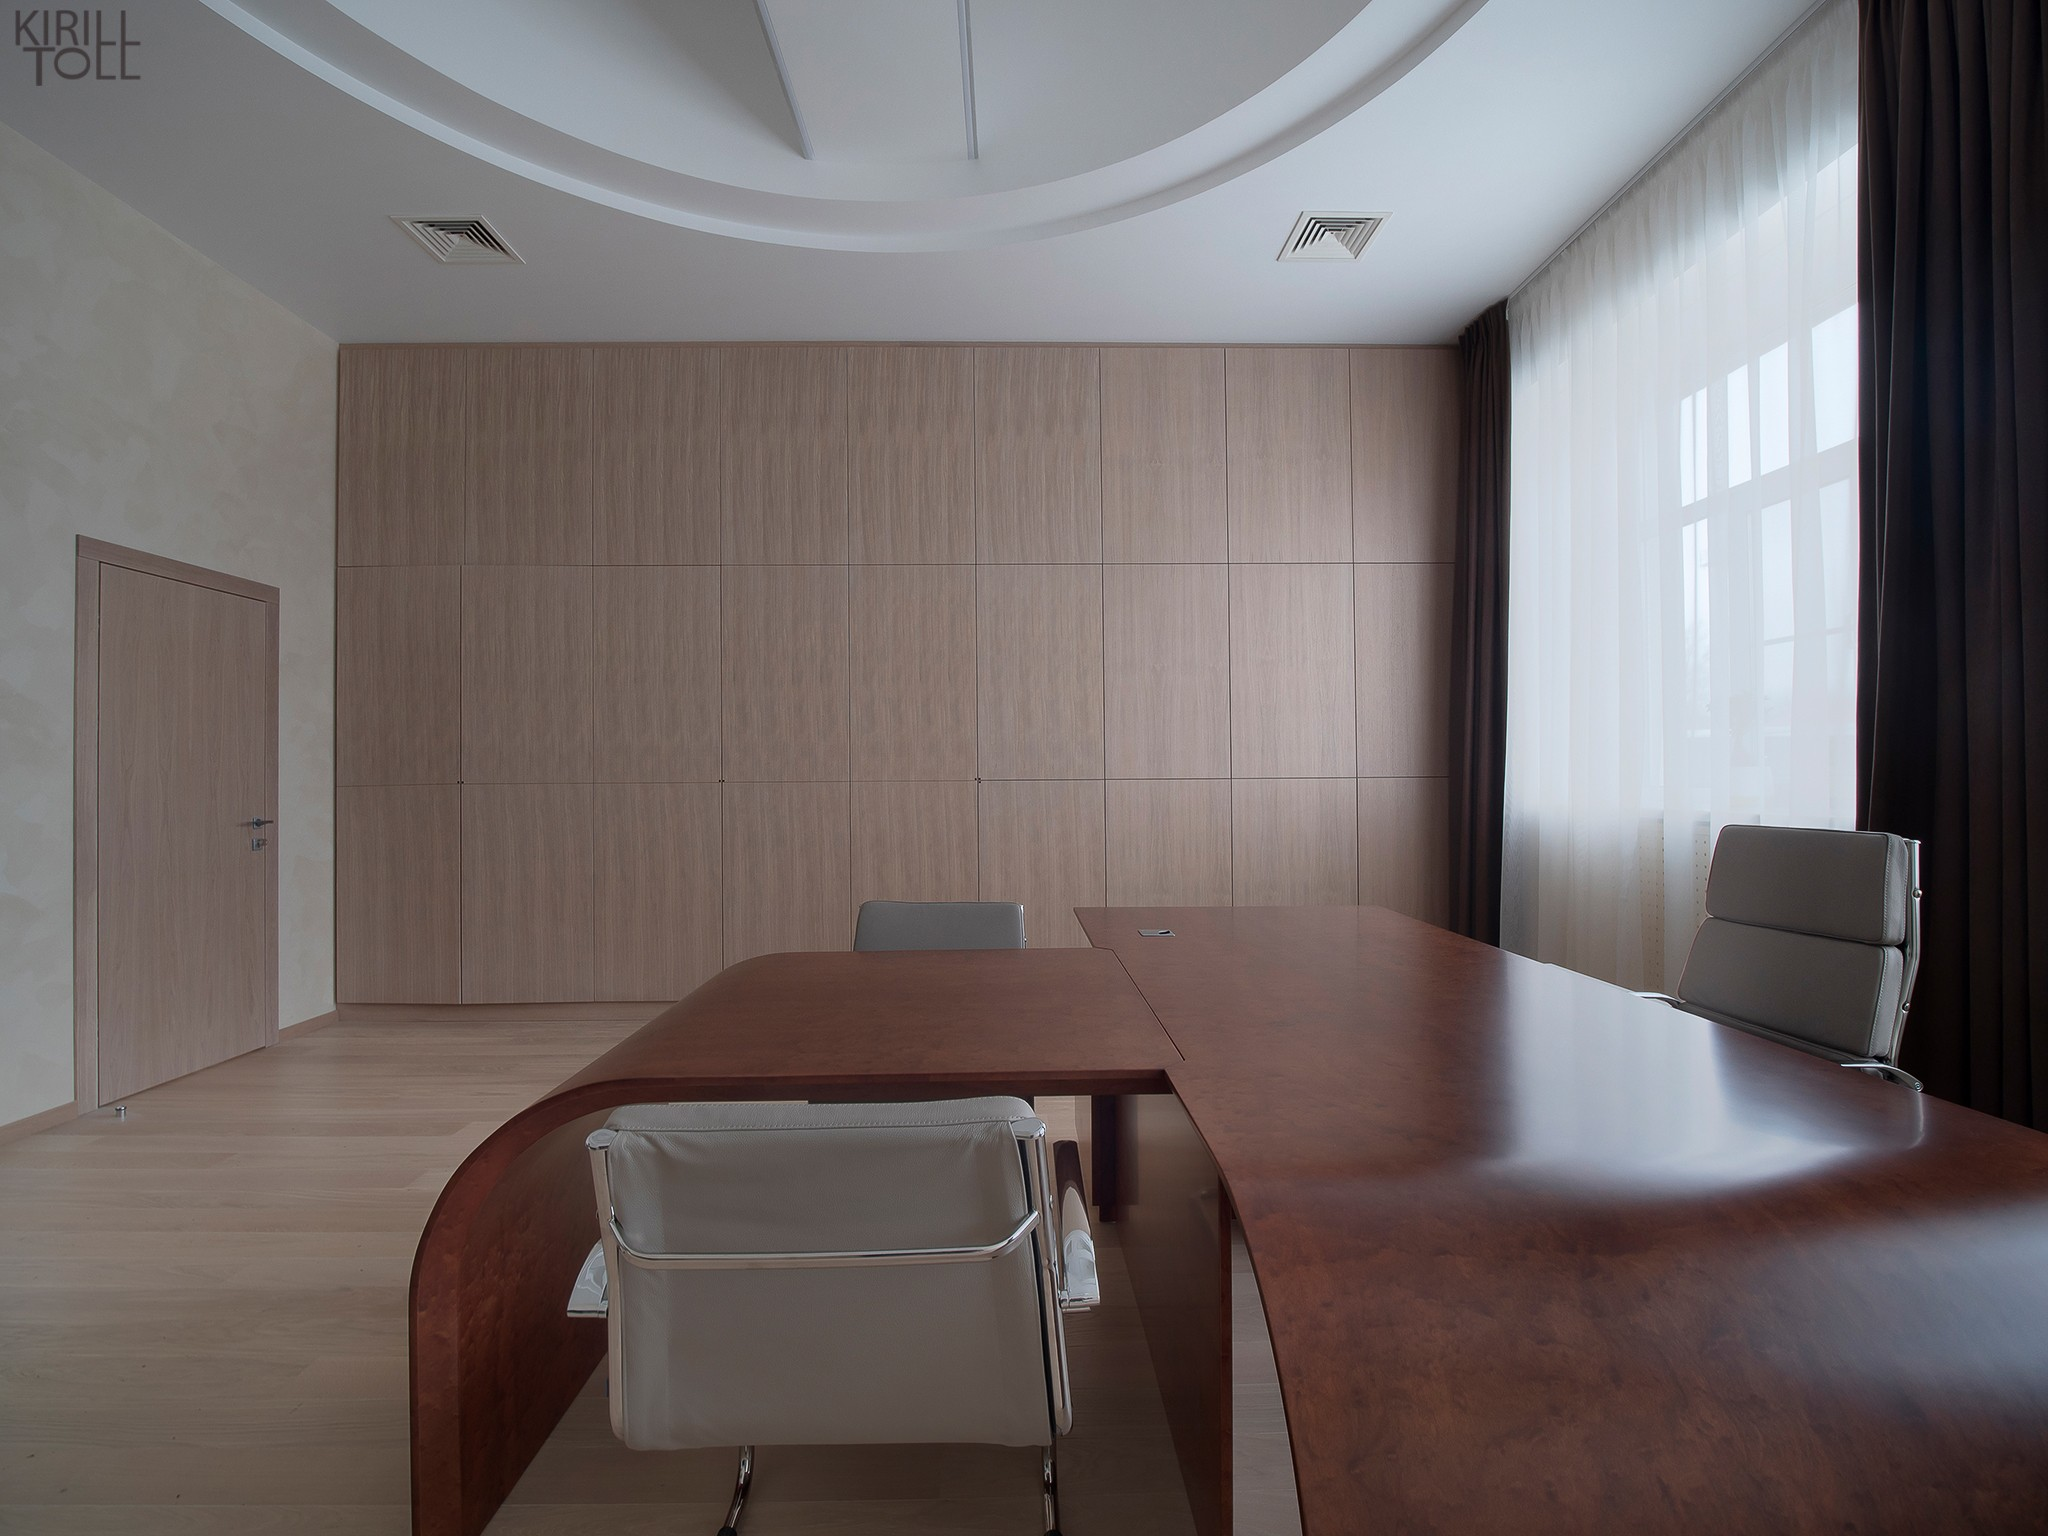 Photographing office cabinets and furniture for them. Interior photographer in Moscow Kirill Toll